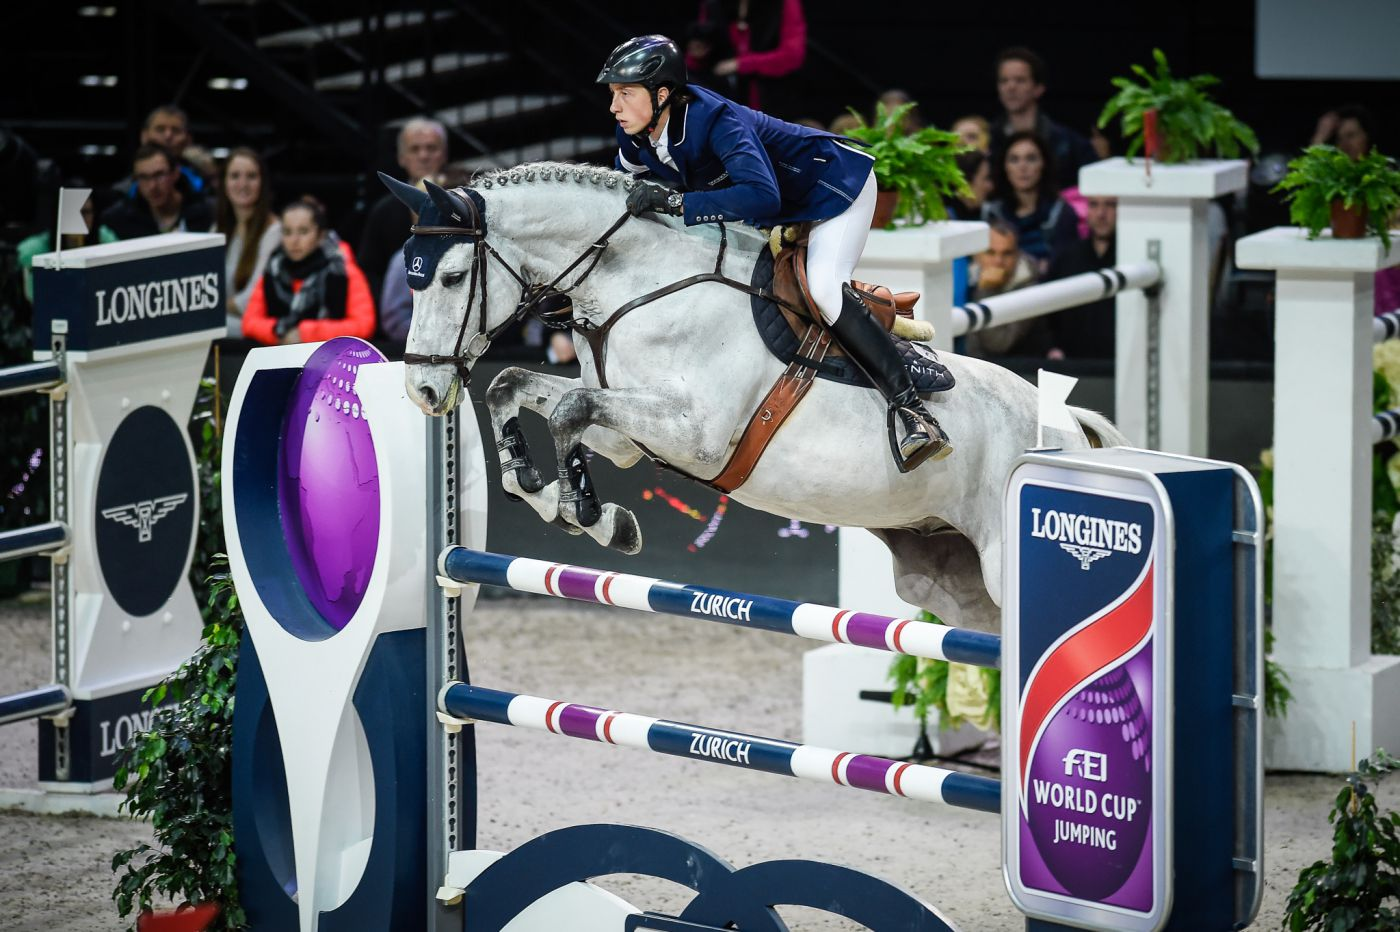 Longines Show Jumping Event: Pius Schwizer wins the Swiss leg of the Longines FEI World Cup™ in Zurich 2